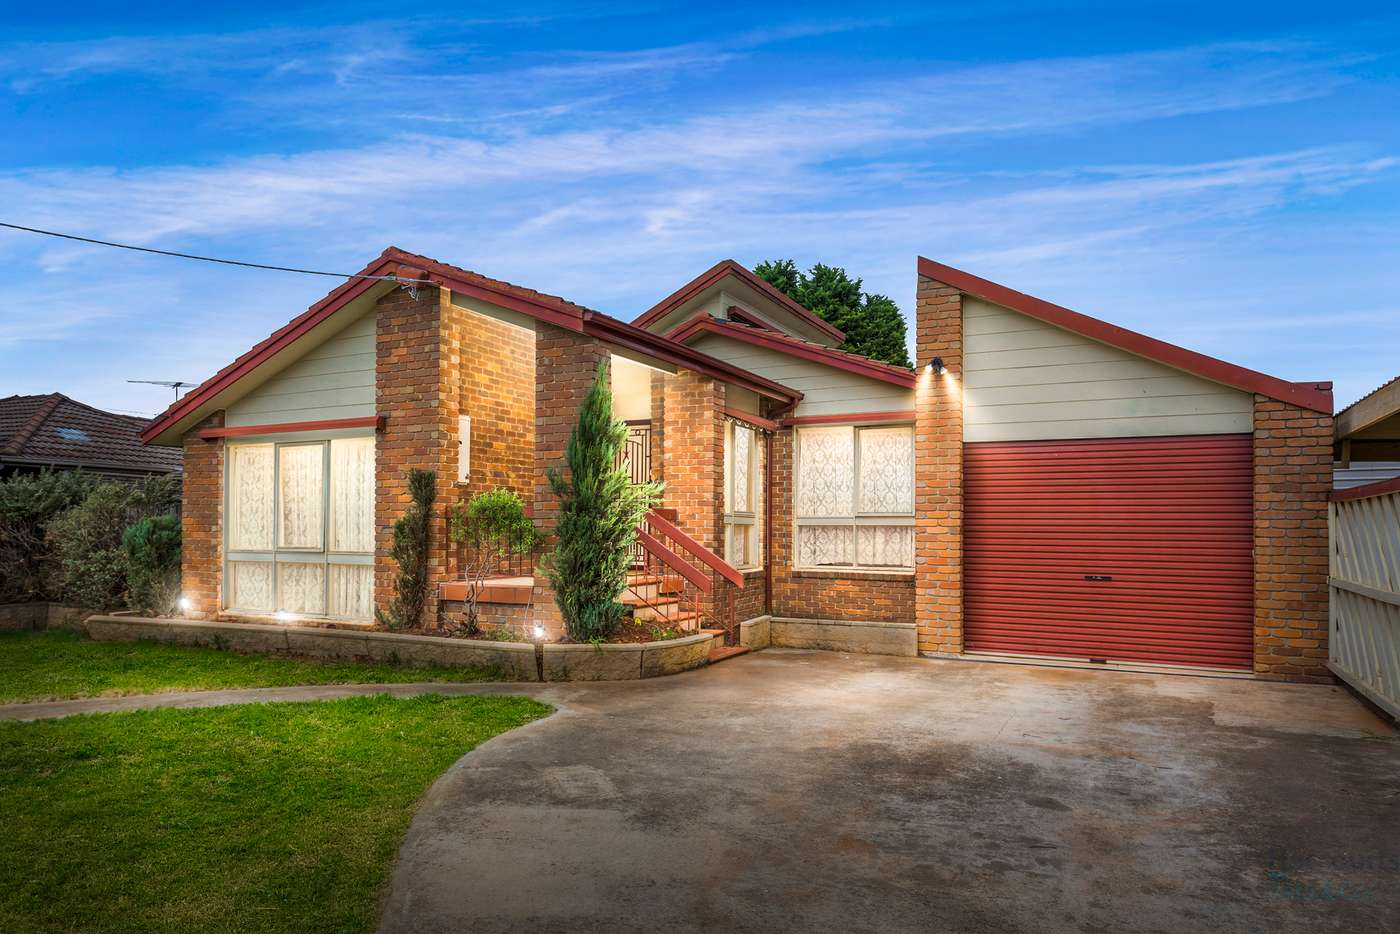 Main view of Homely house listing, 13 Touhey Avenue, Epping VIC 3076